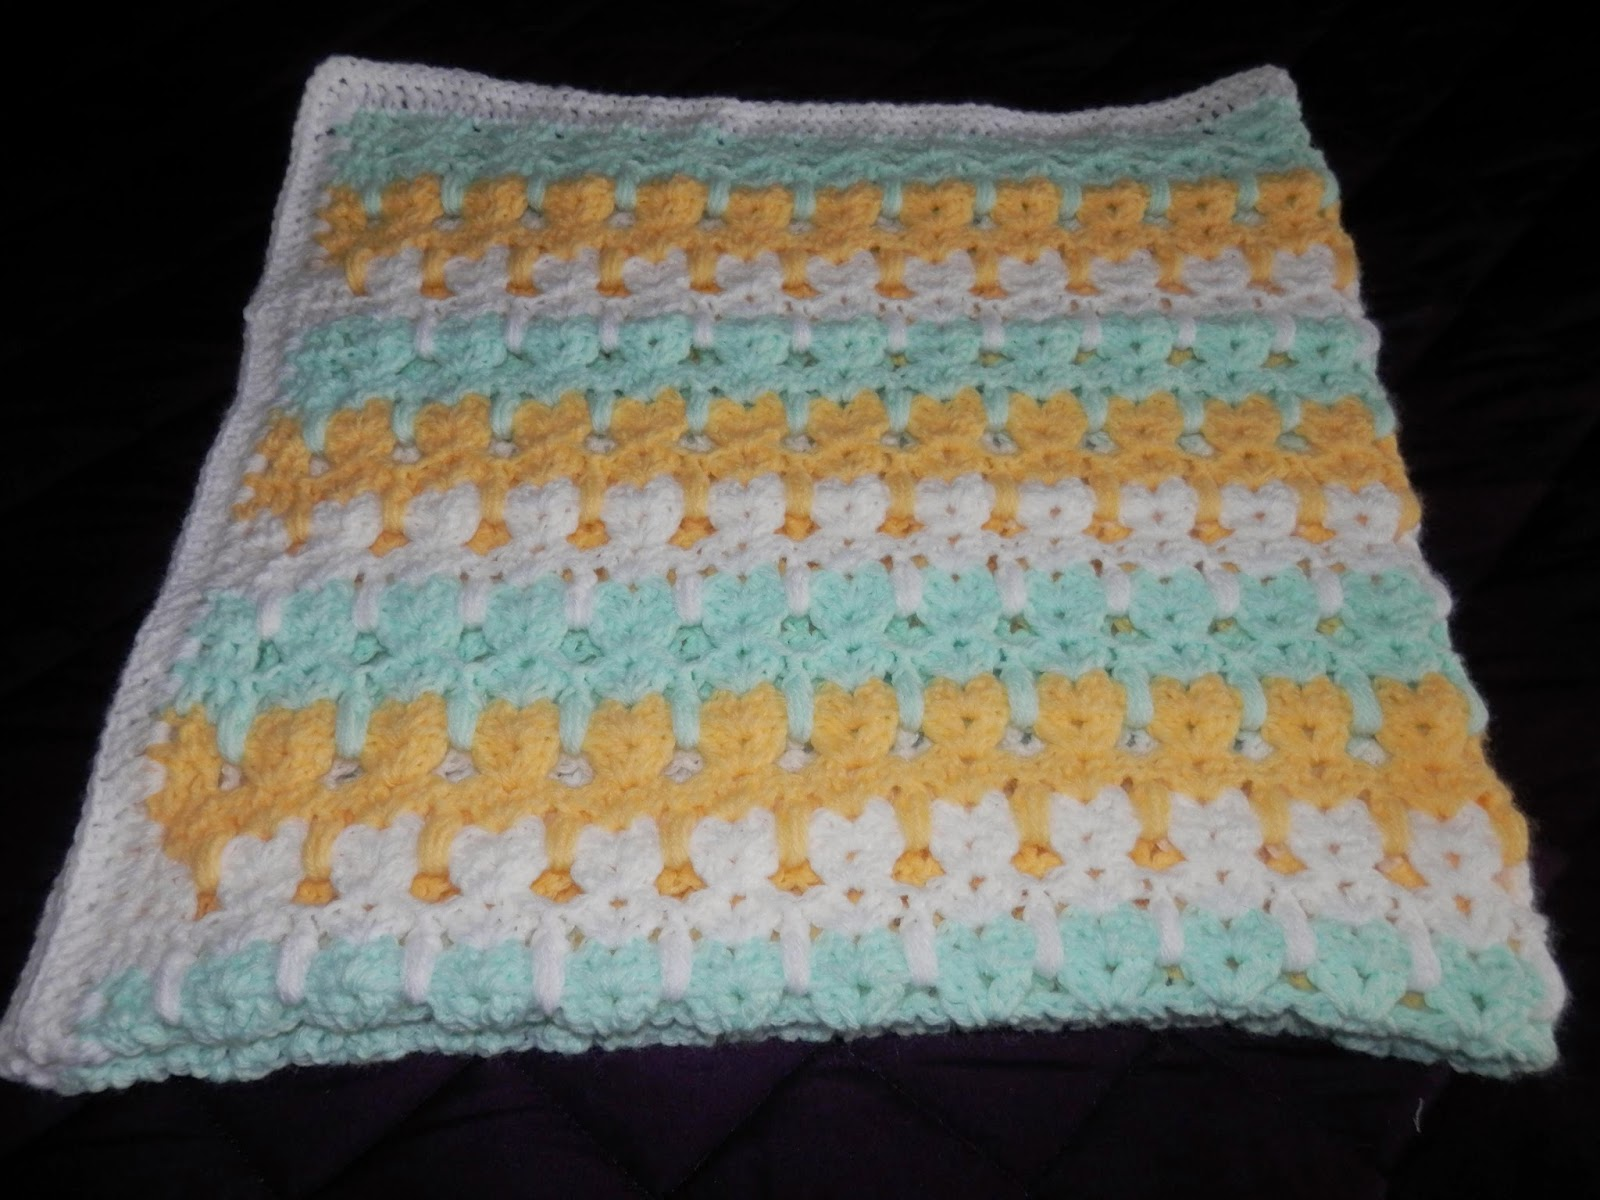 Crochet Patterns Kittens In A Row : this baby blanket using the Kittens in a Row baby blanket pattern ...